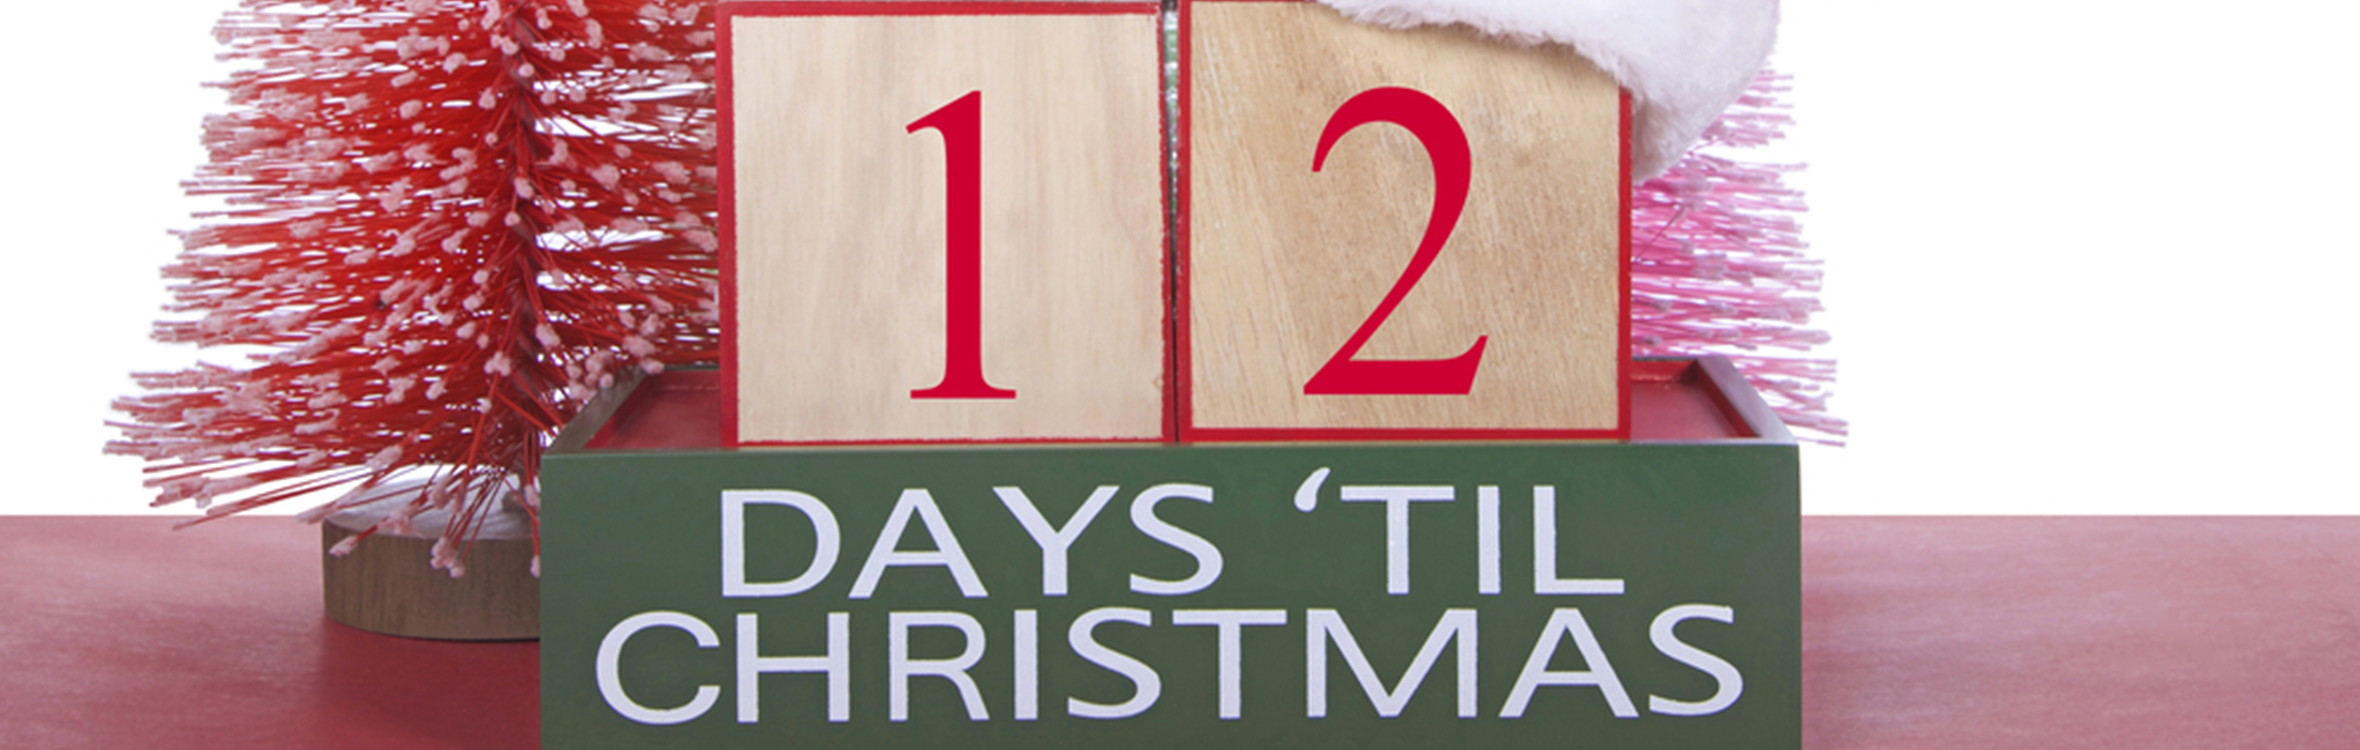 12 days til christmas header image